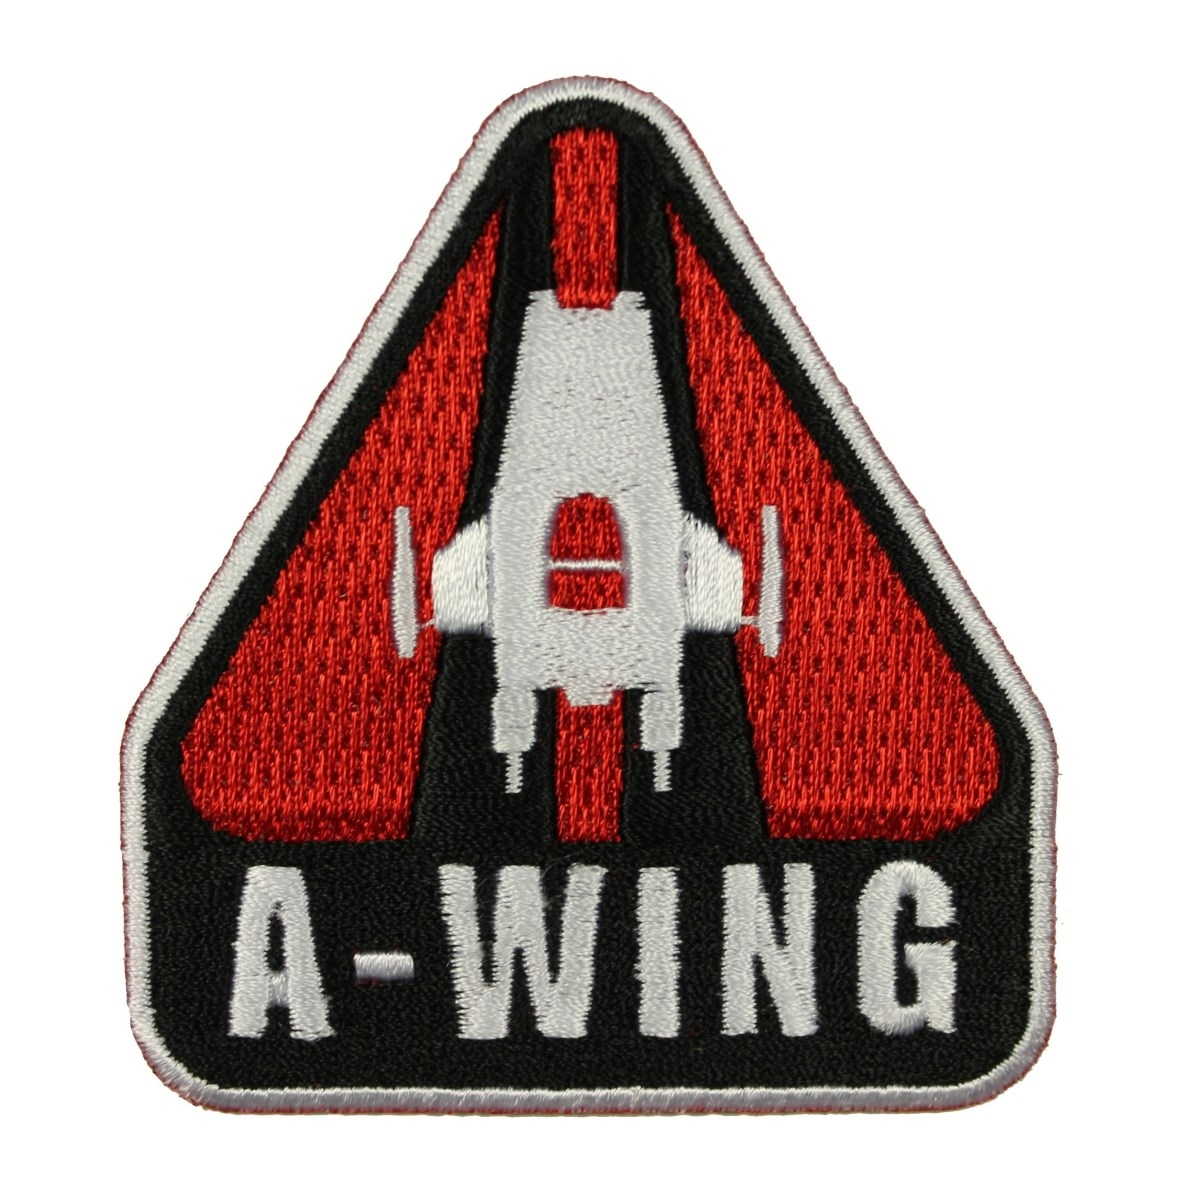 TLJ A-Wing Rebel Spaceship Iron-On Patch